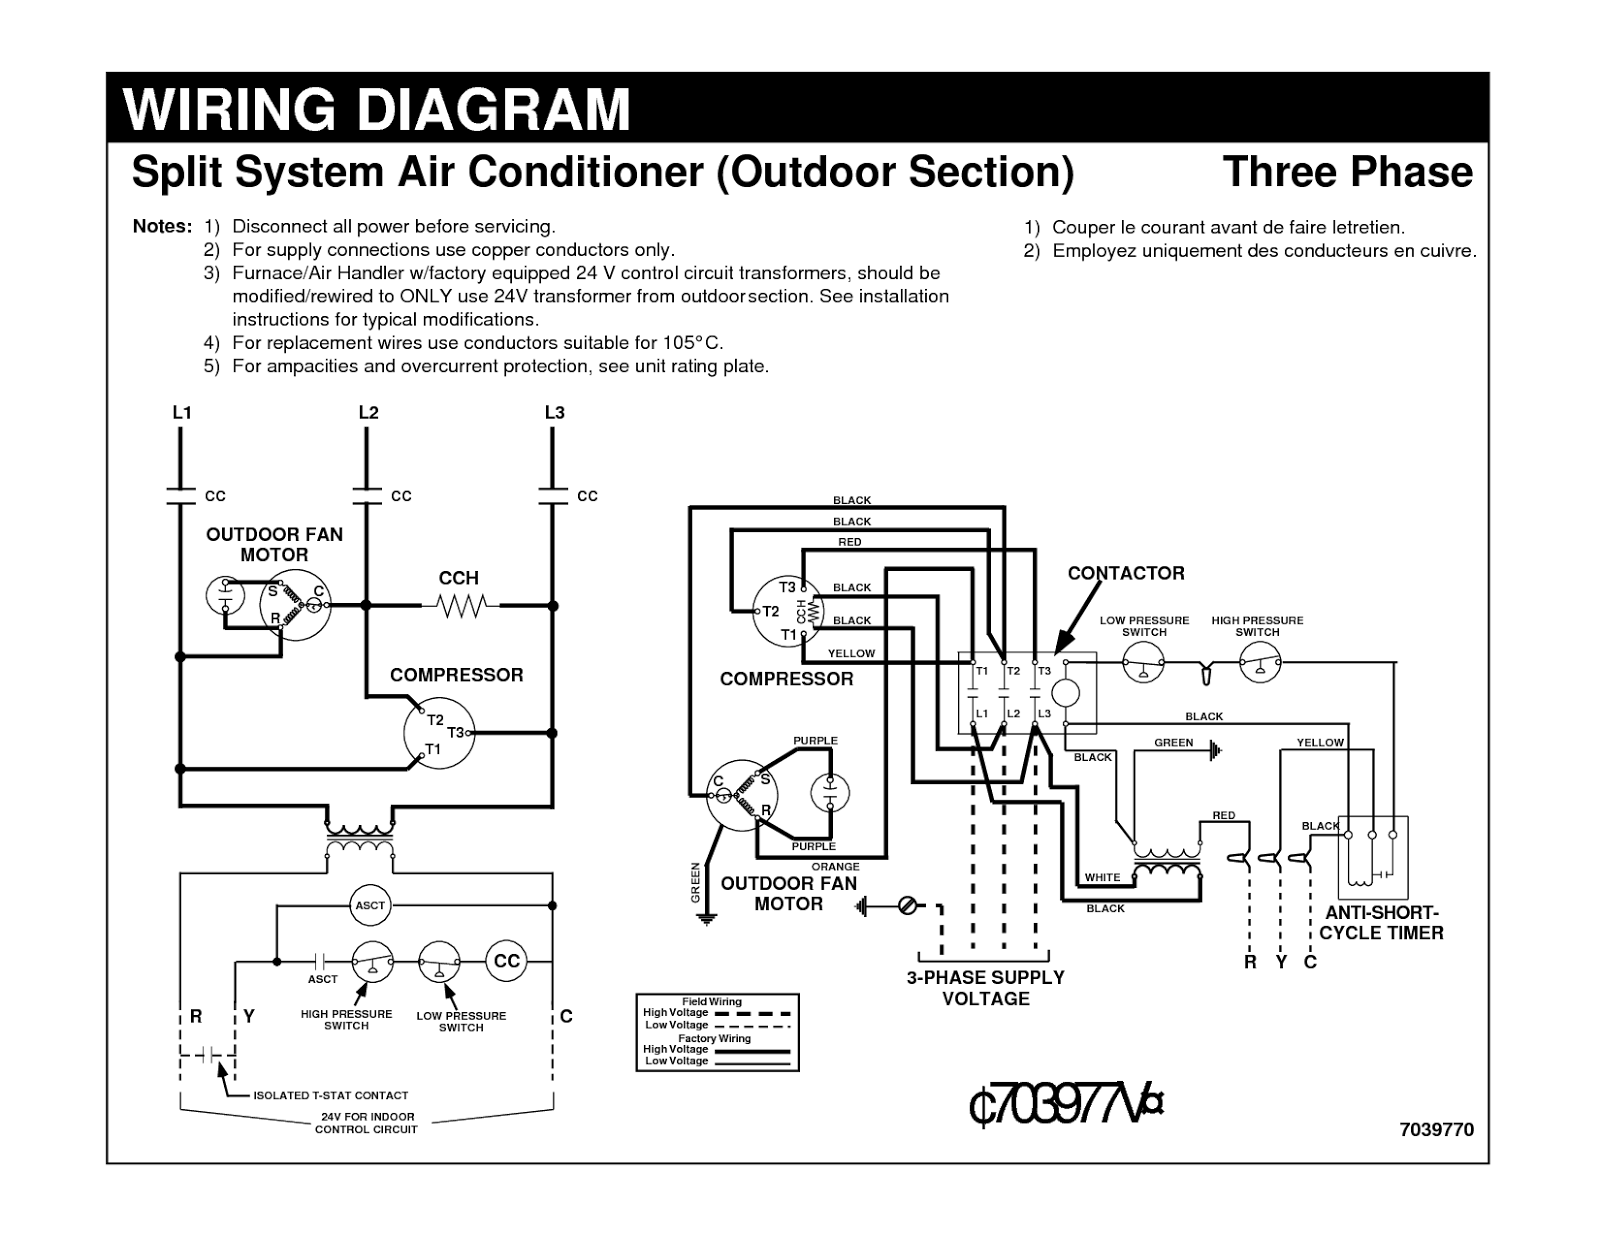 A c wire diagram wiring diagrams schematics electrical wiring diagrams for air conditioning systems part one a c wire diagram 5 a c wire diagram swarovskicordoba Image collections